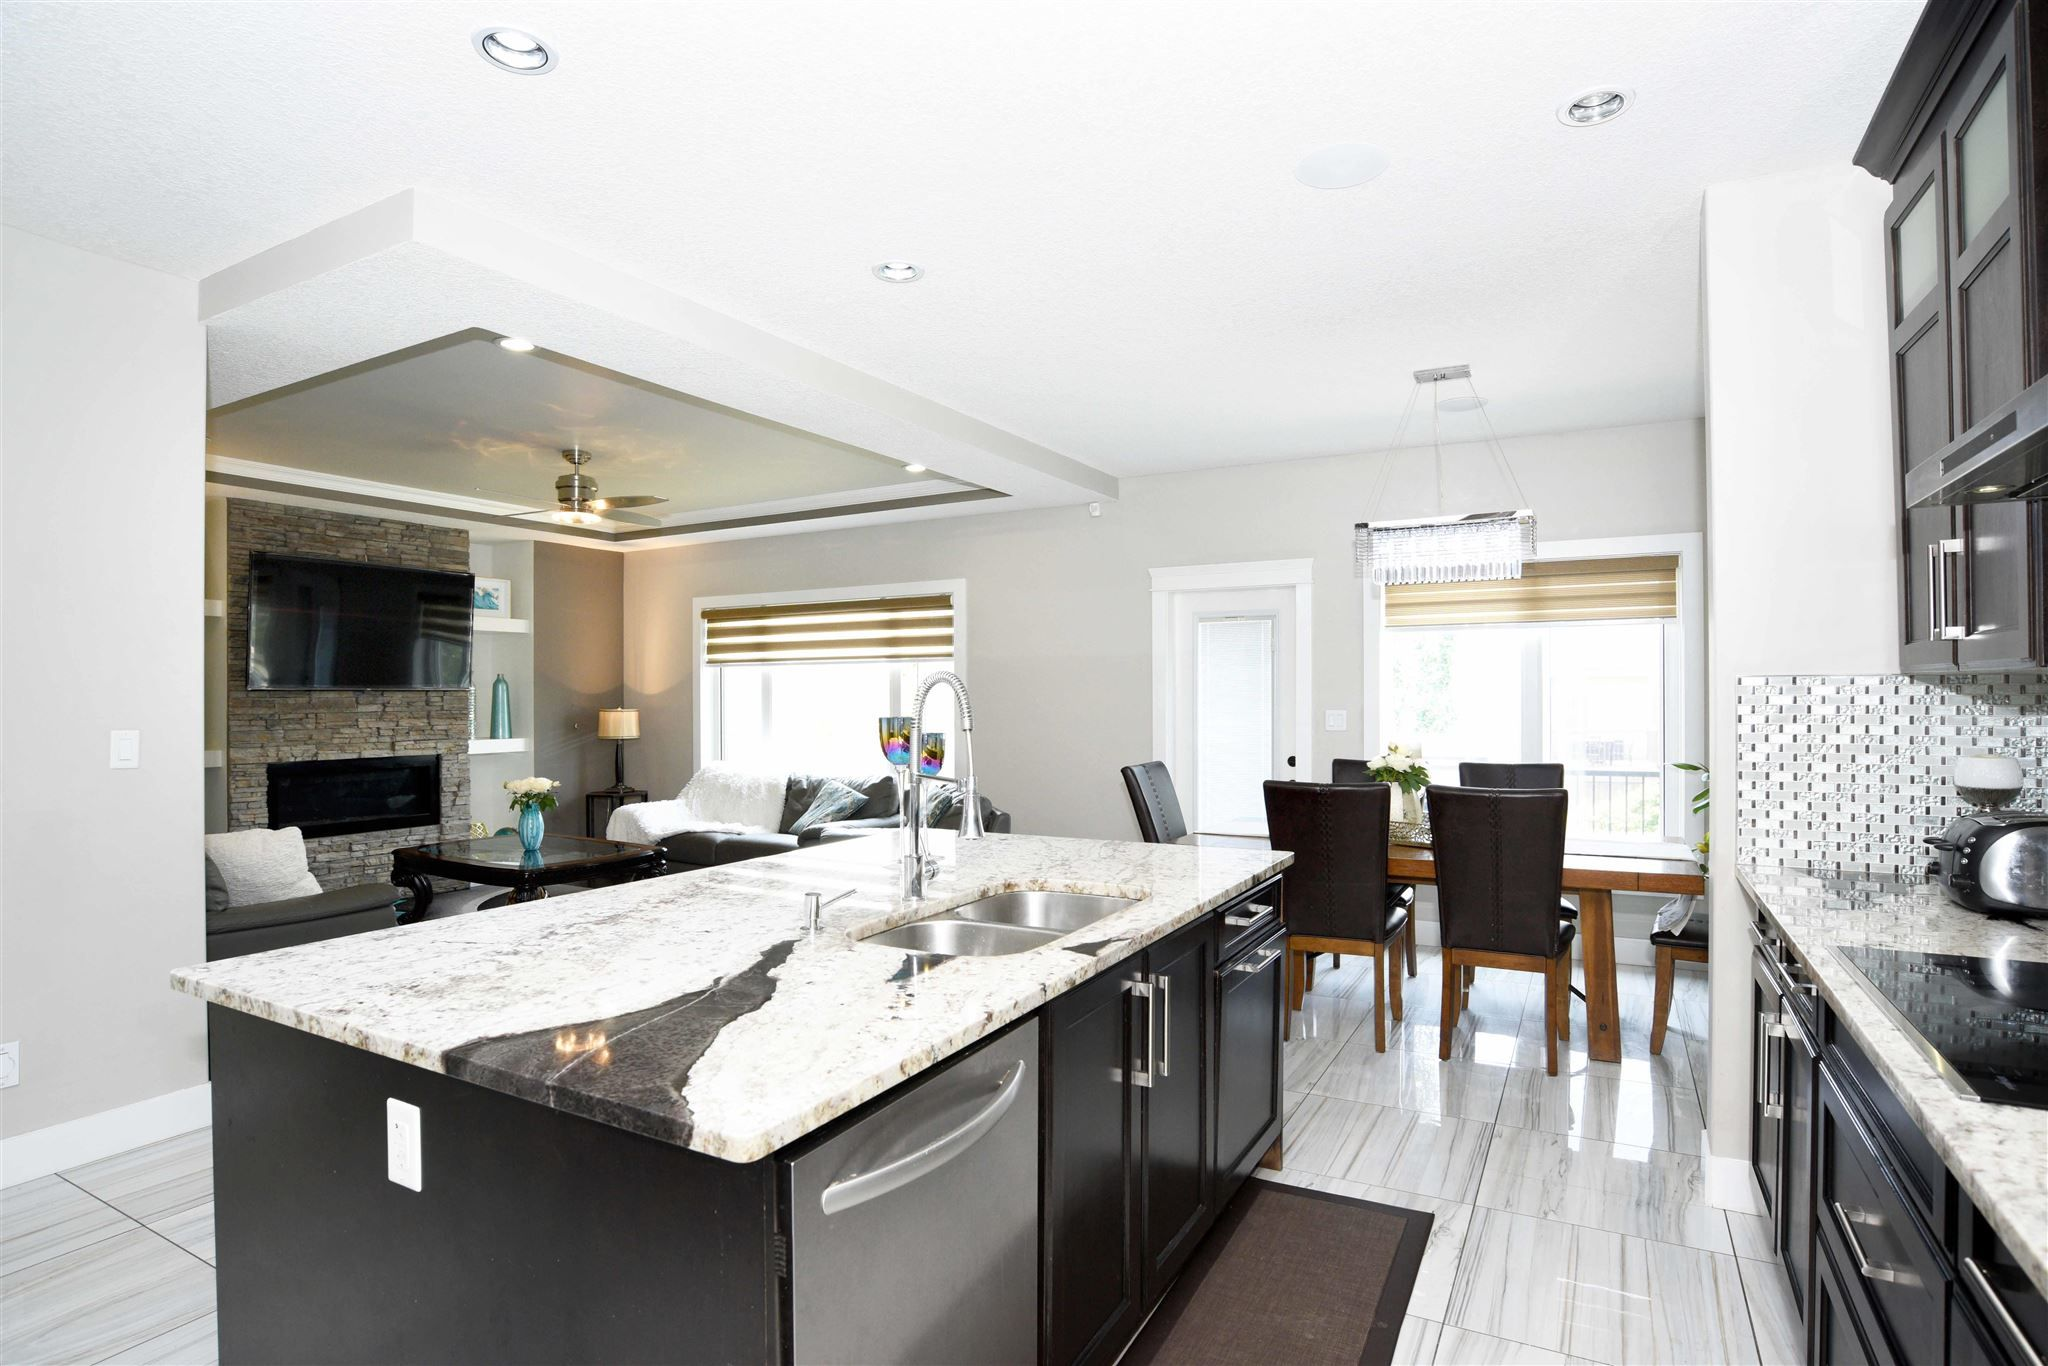 Main Photo: 4110 CHARLES Link in Edmonton: Zone 55 House for sale : MLS®# E4256267